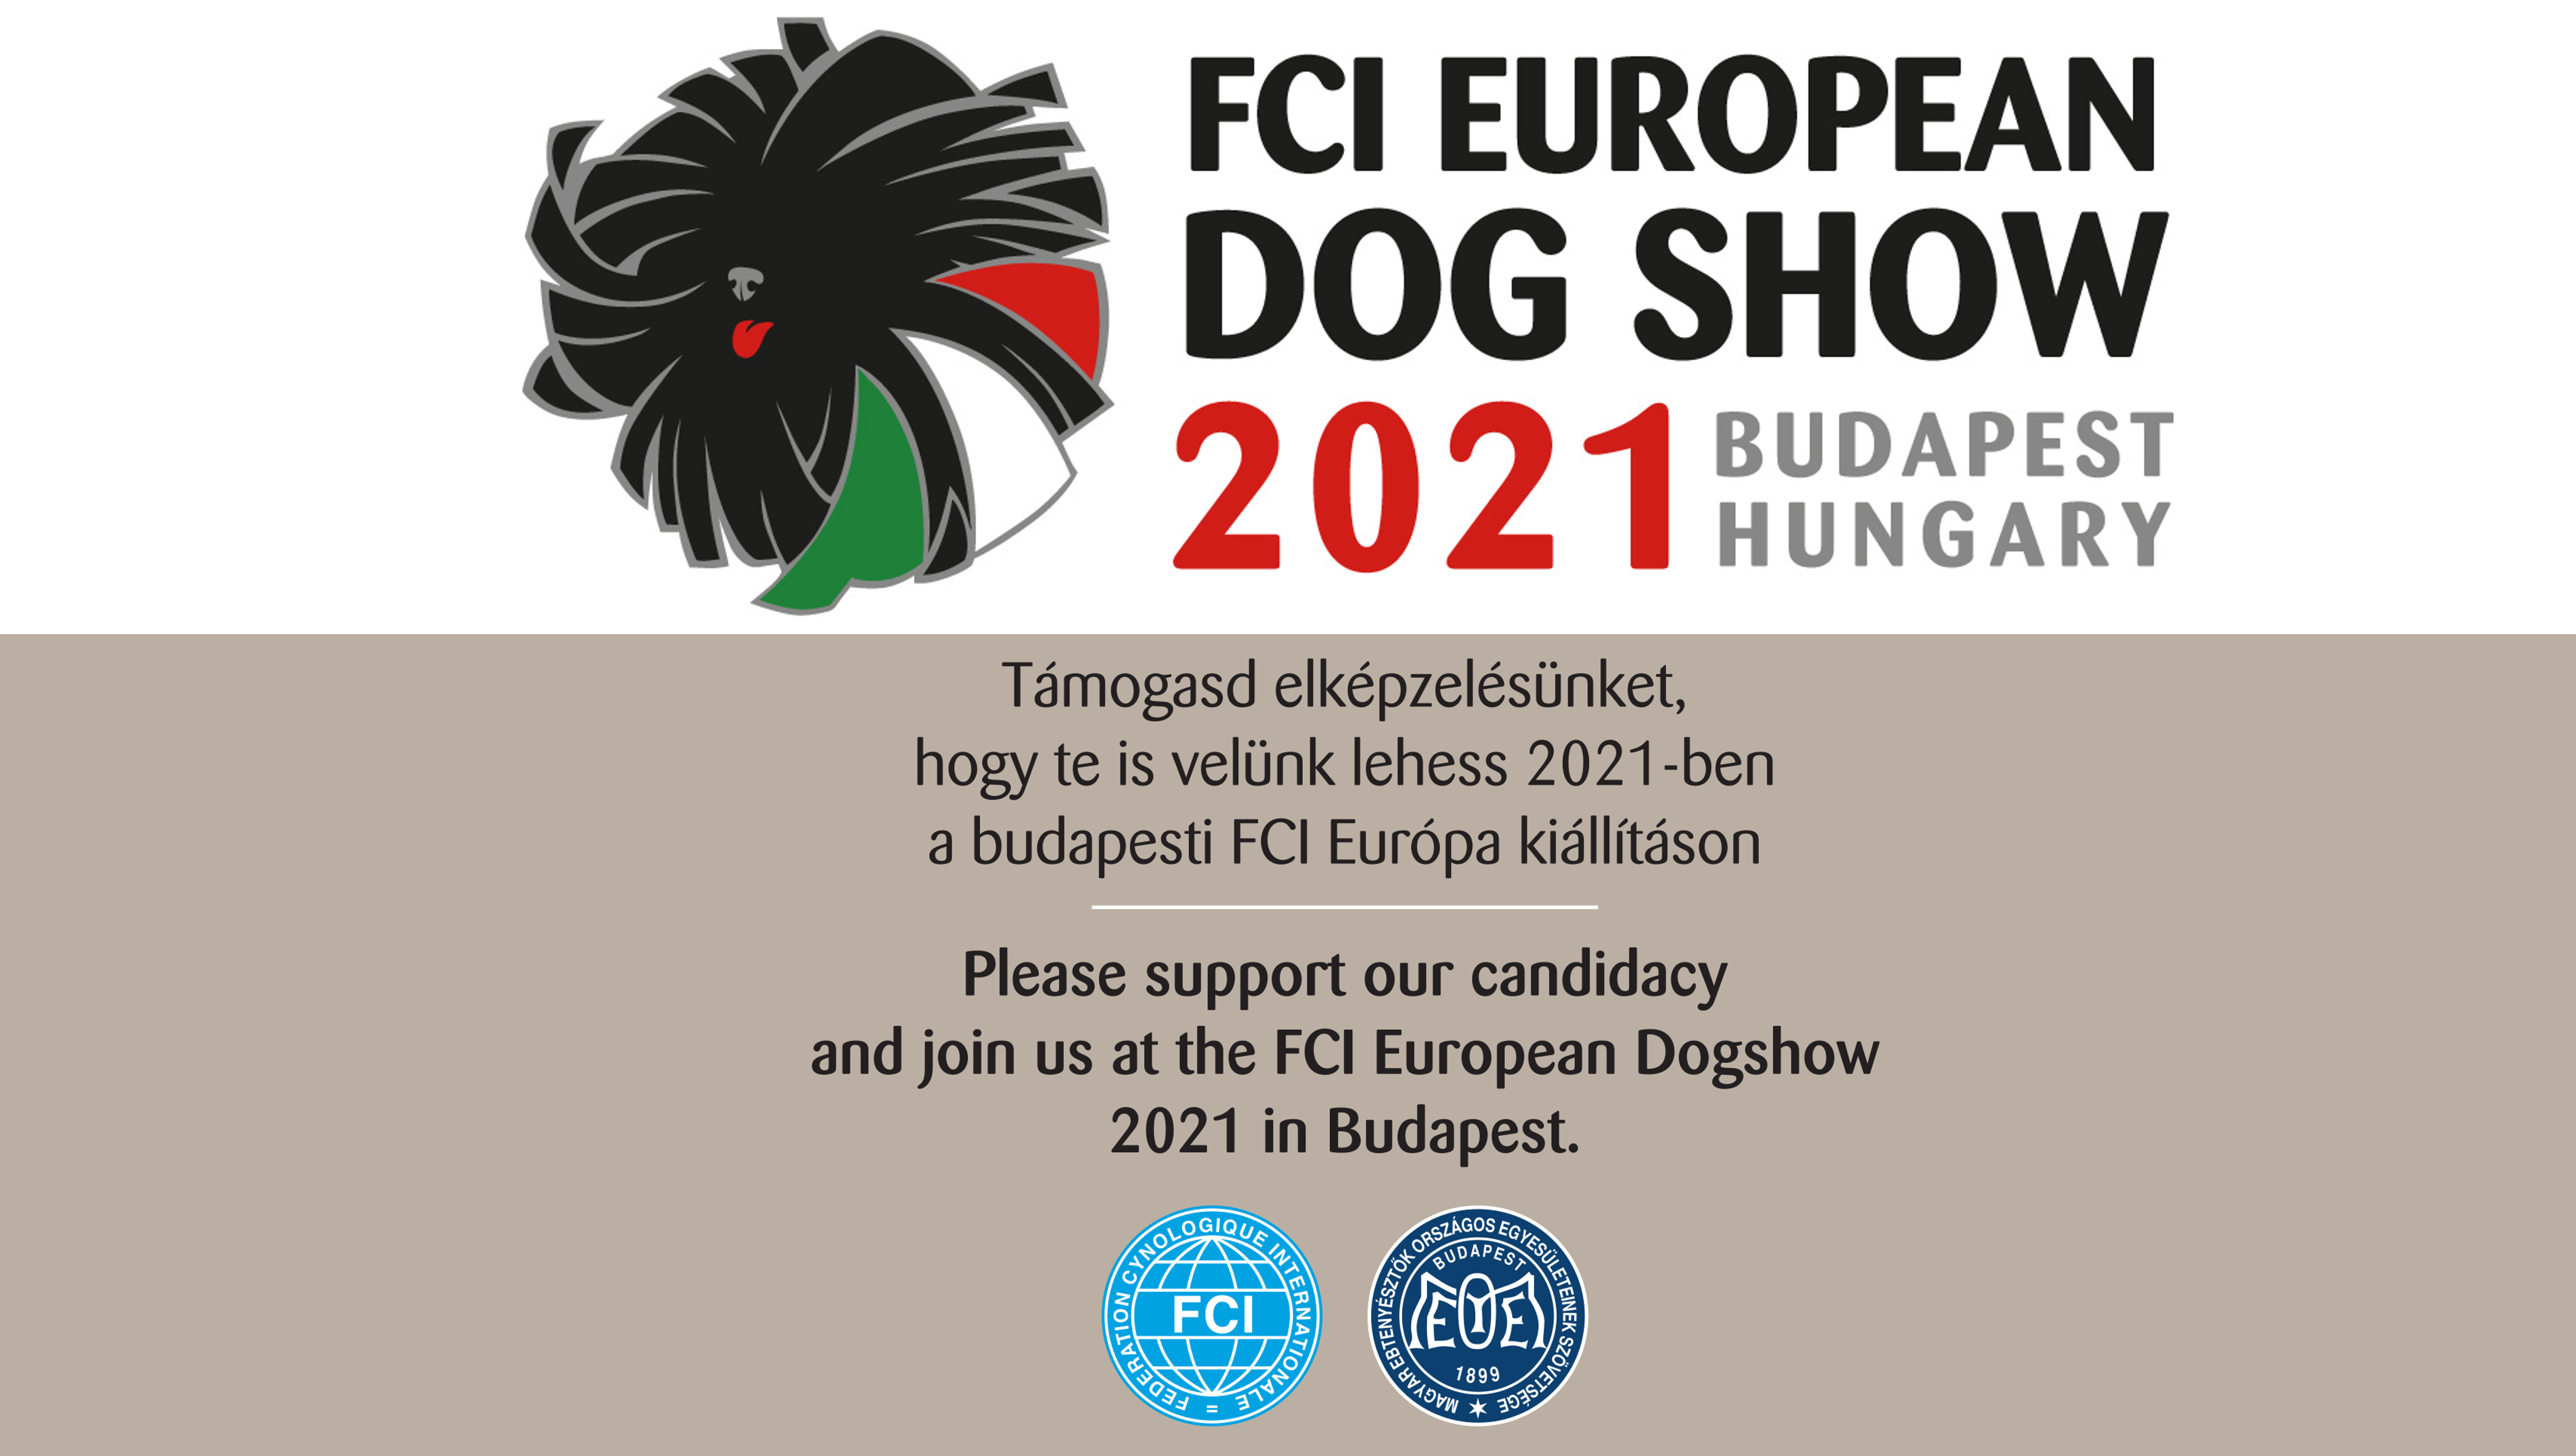 FCI European Dog Show 2021